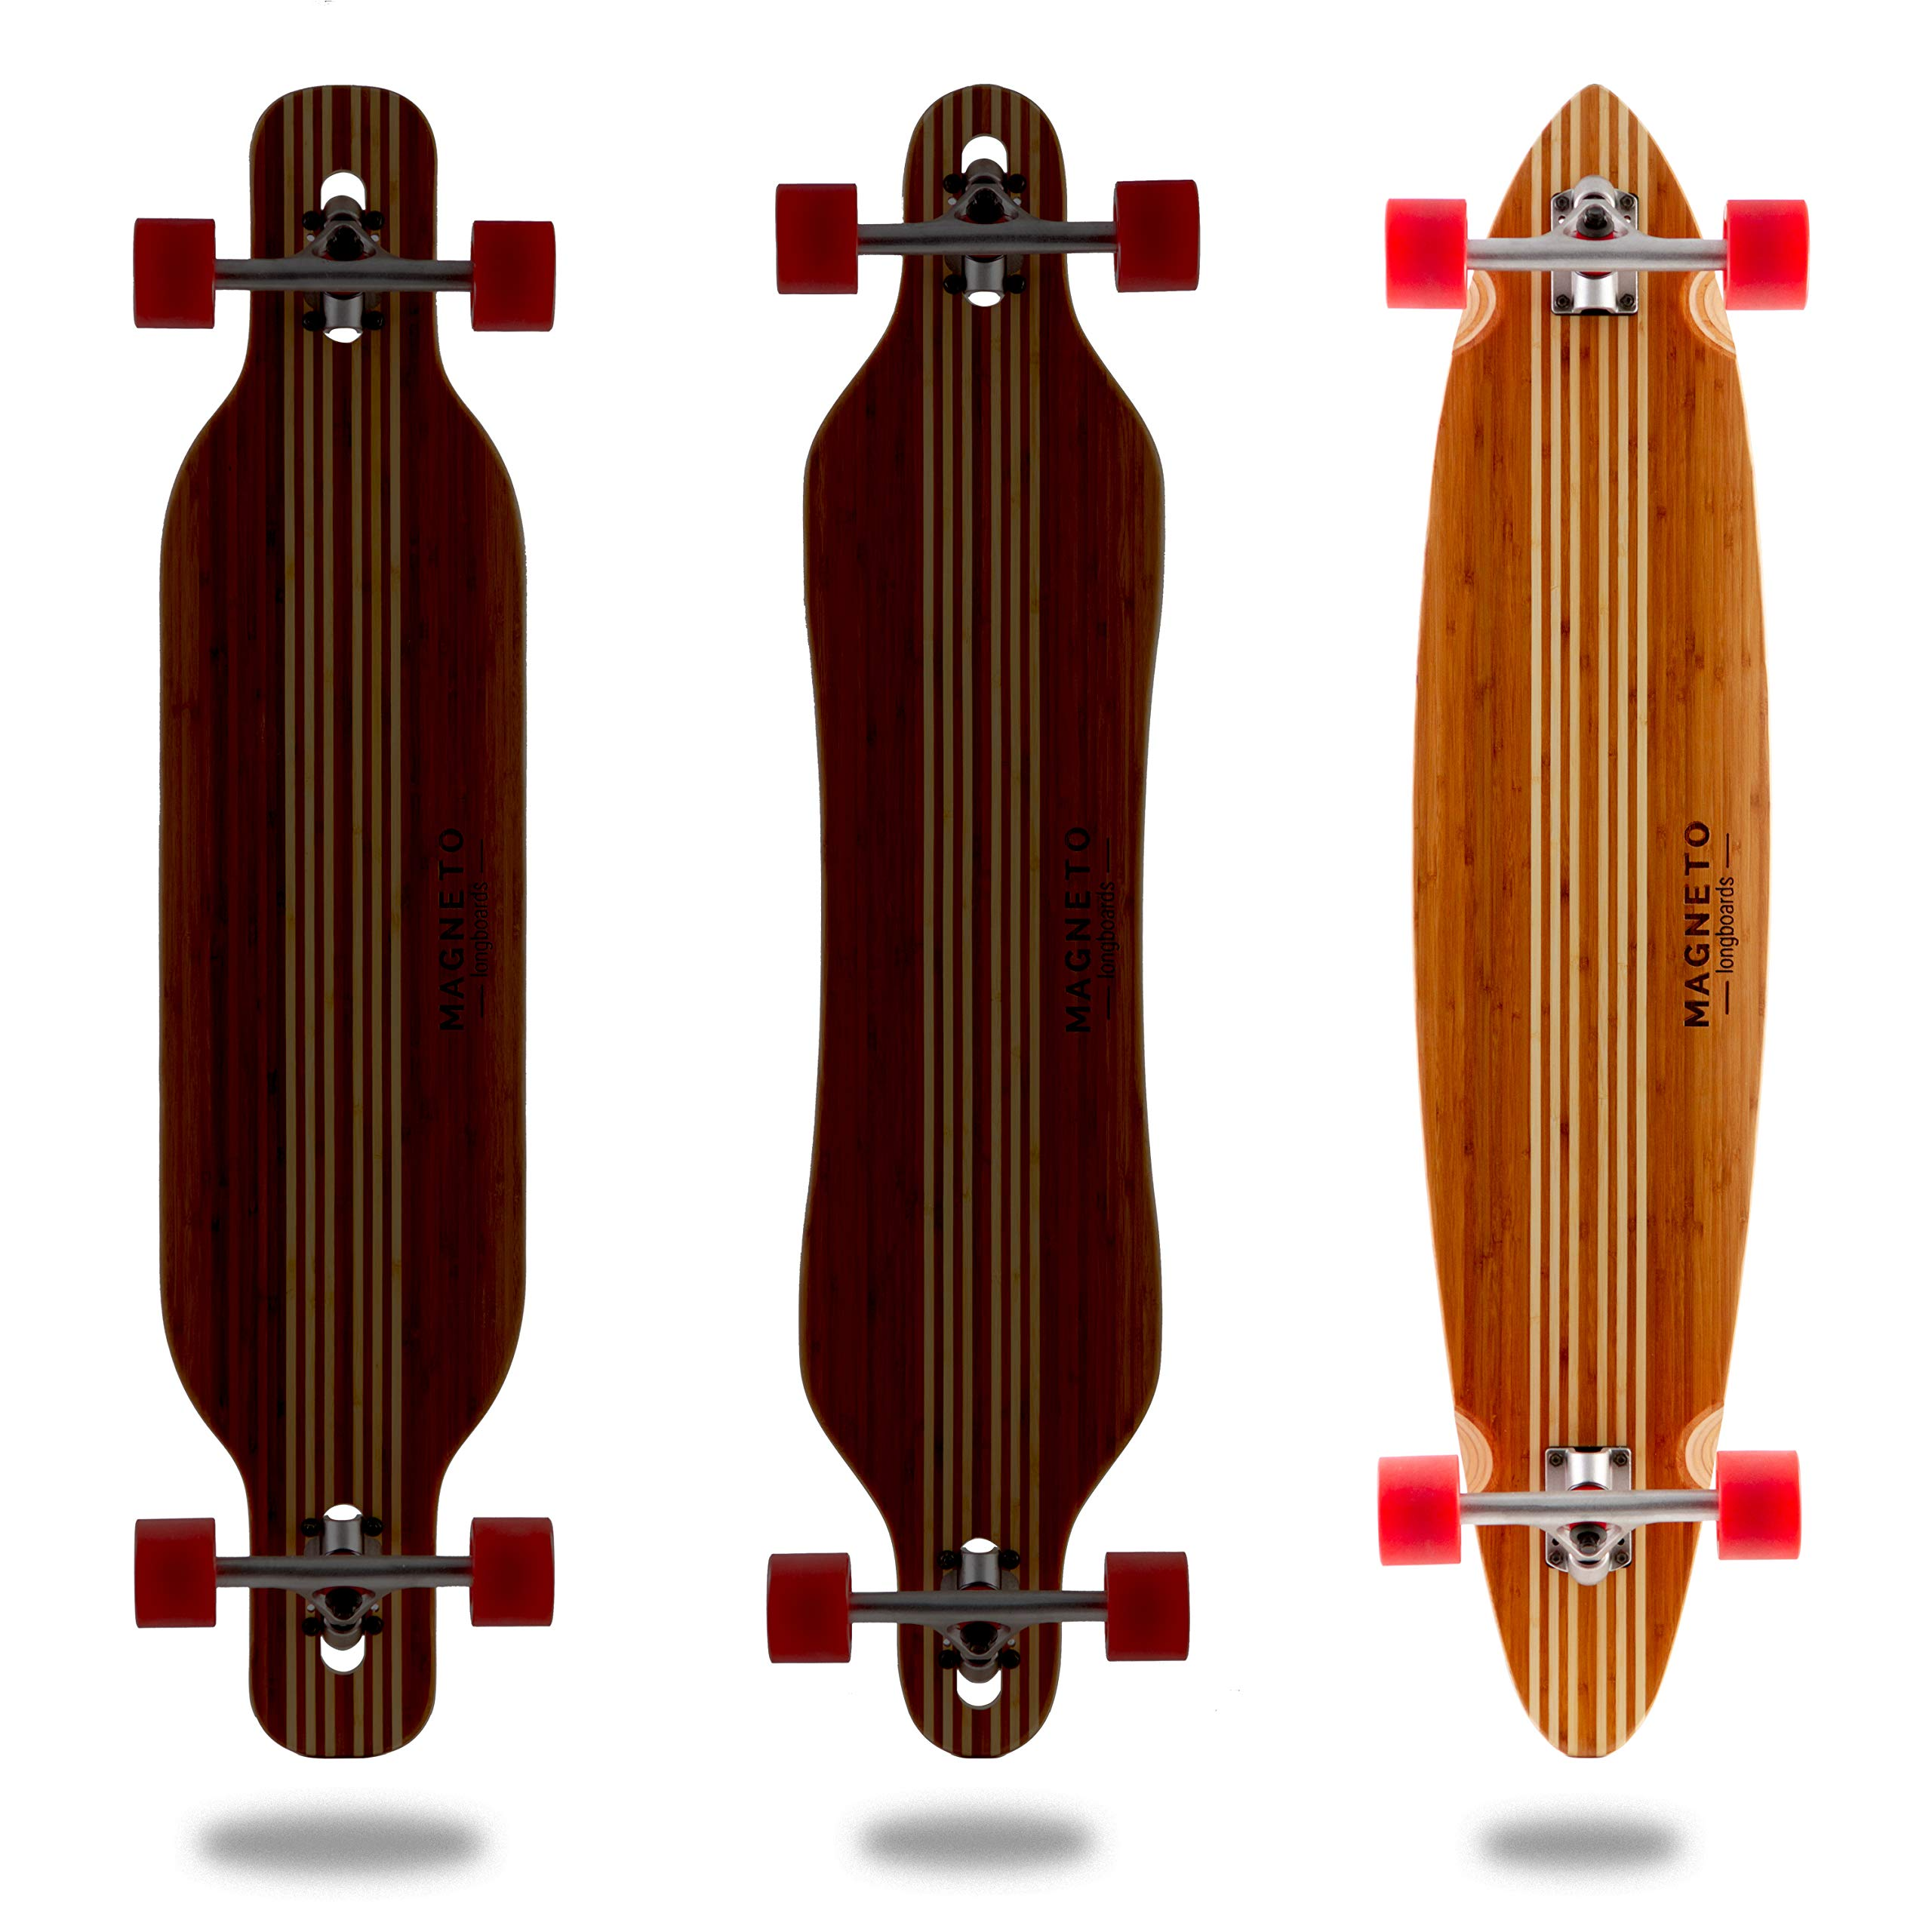 Hana Longboard Collection | 42 inch Longboard Skateboards | Bamboo with Hard Maple Core | Cruising, Carving, Dancing, Freestyle (Pintail) by Magneto (Image #2)